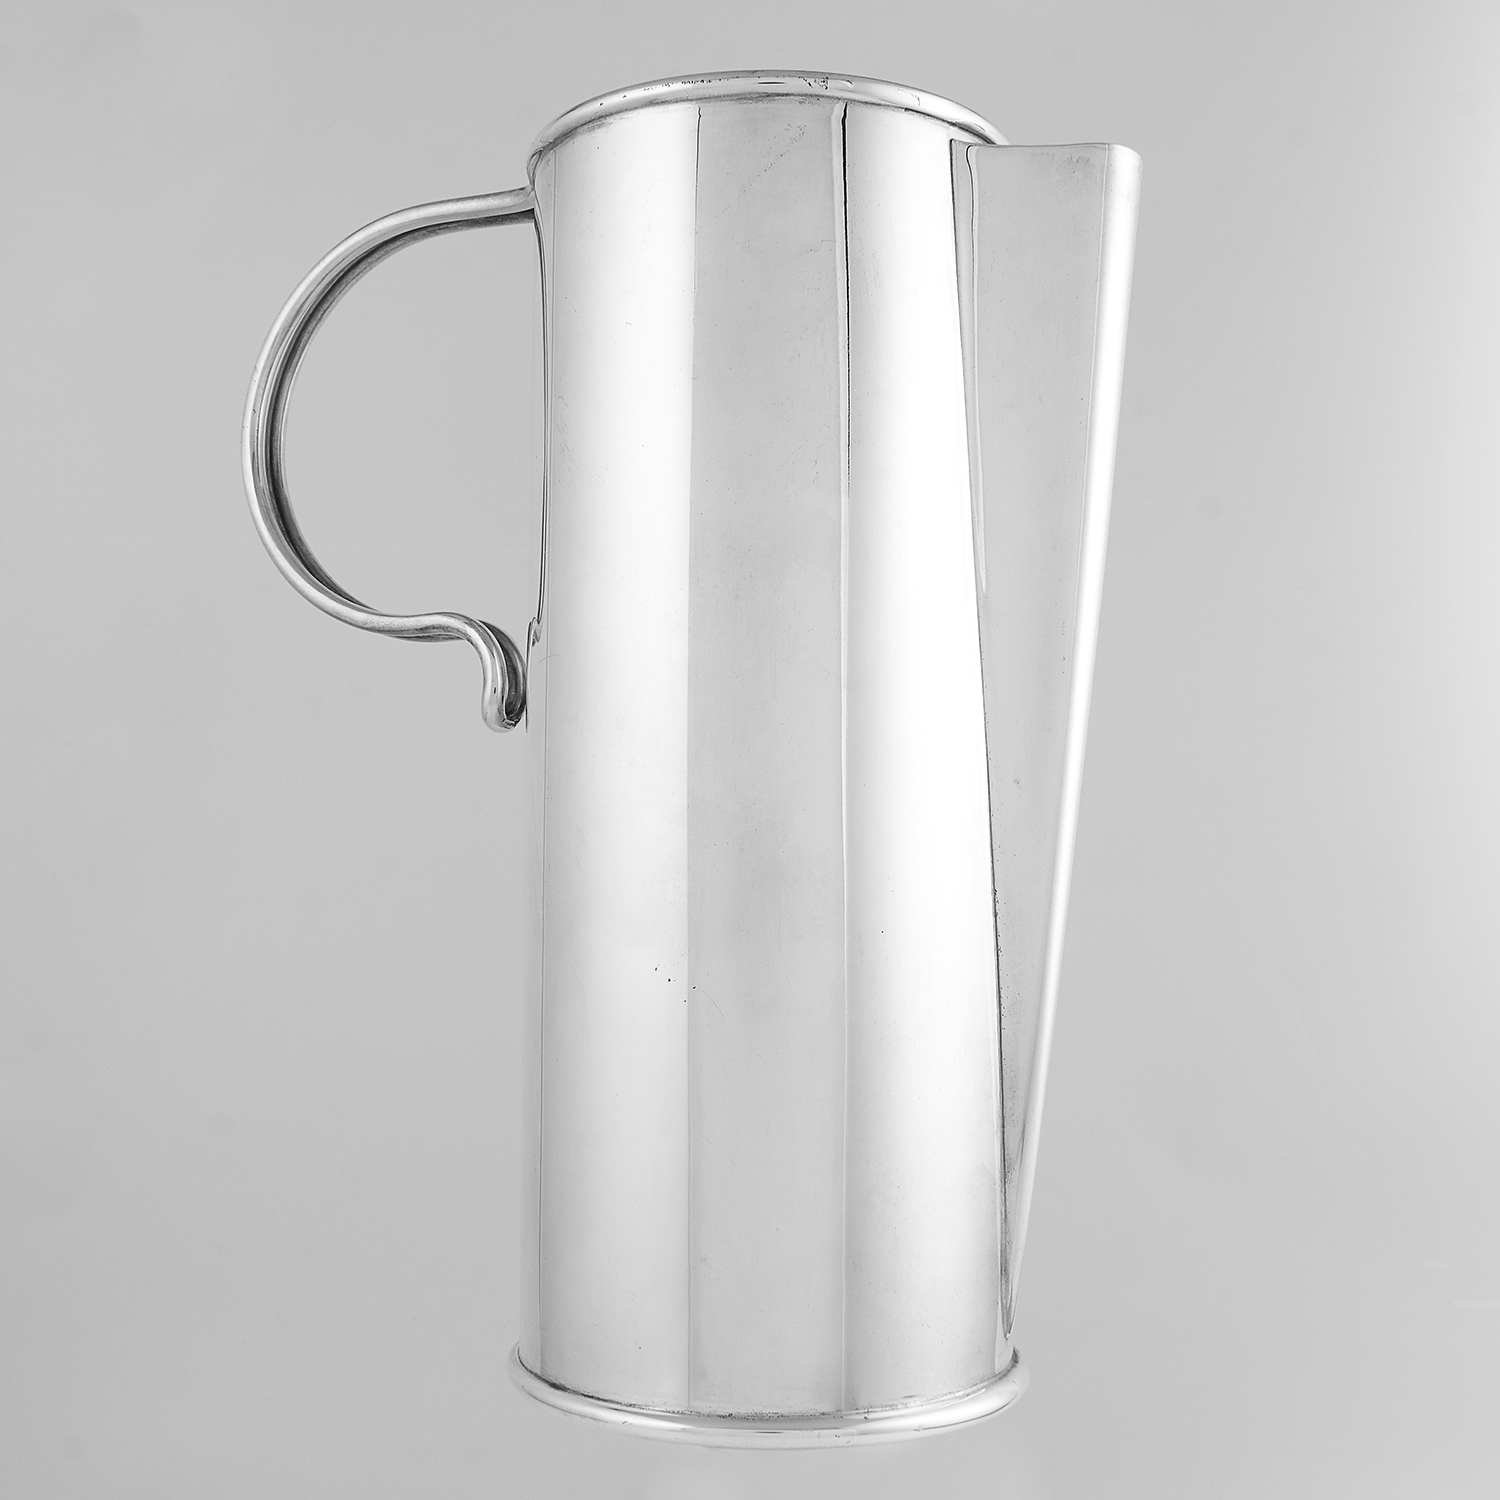 Los 83 - VINTAGE ITALIAN STERLING SILVER EWER / WATER JUG CIRCA 1960 of plain cylindrical form with a